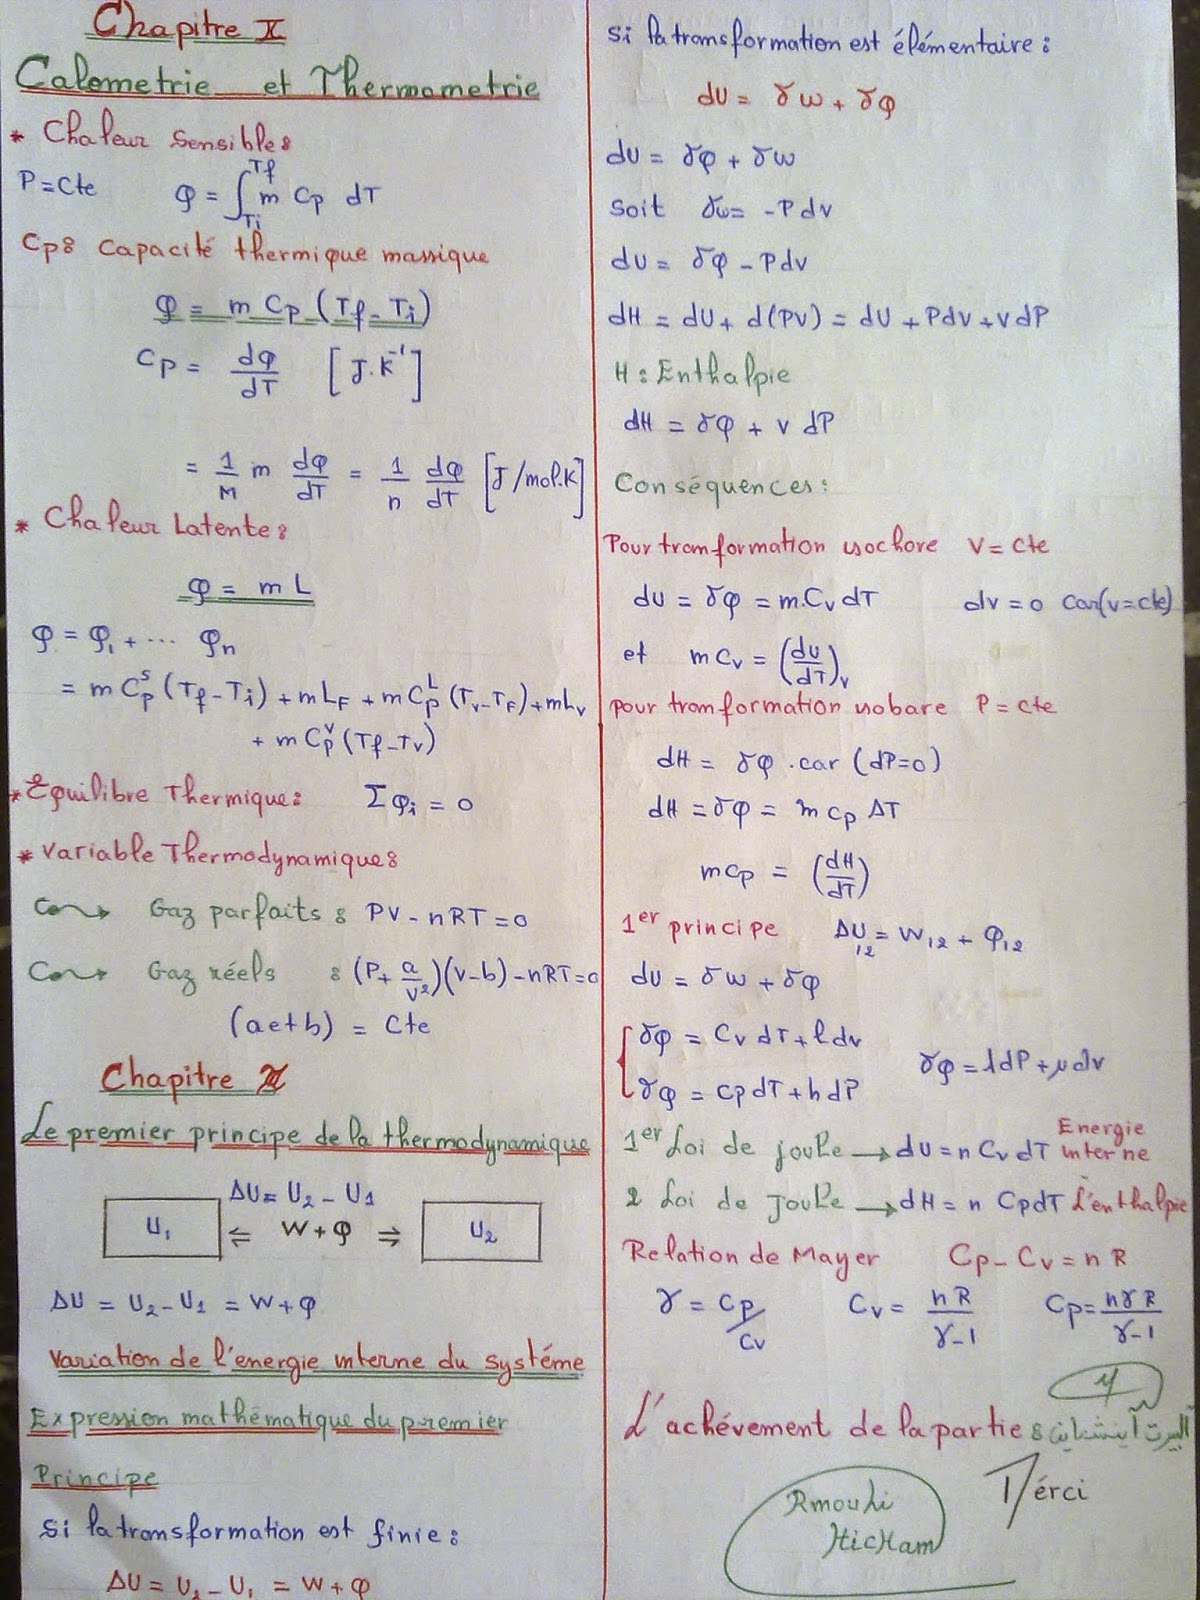 cours thermochimie smpc s2 pdf